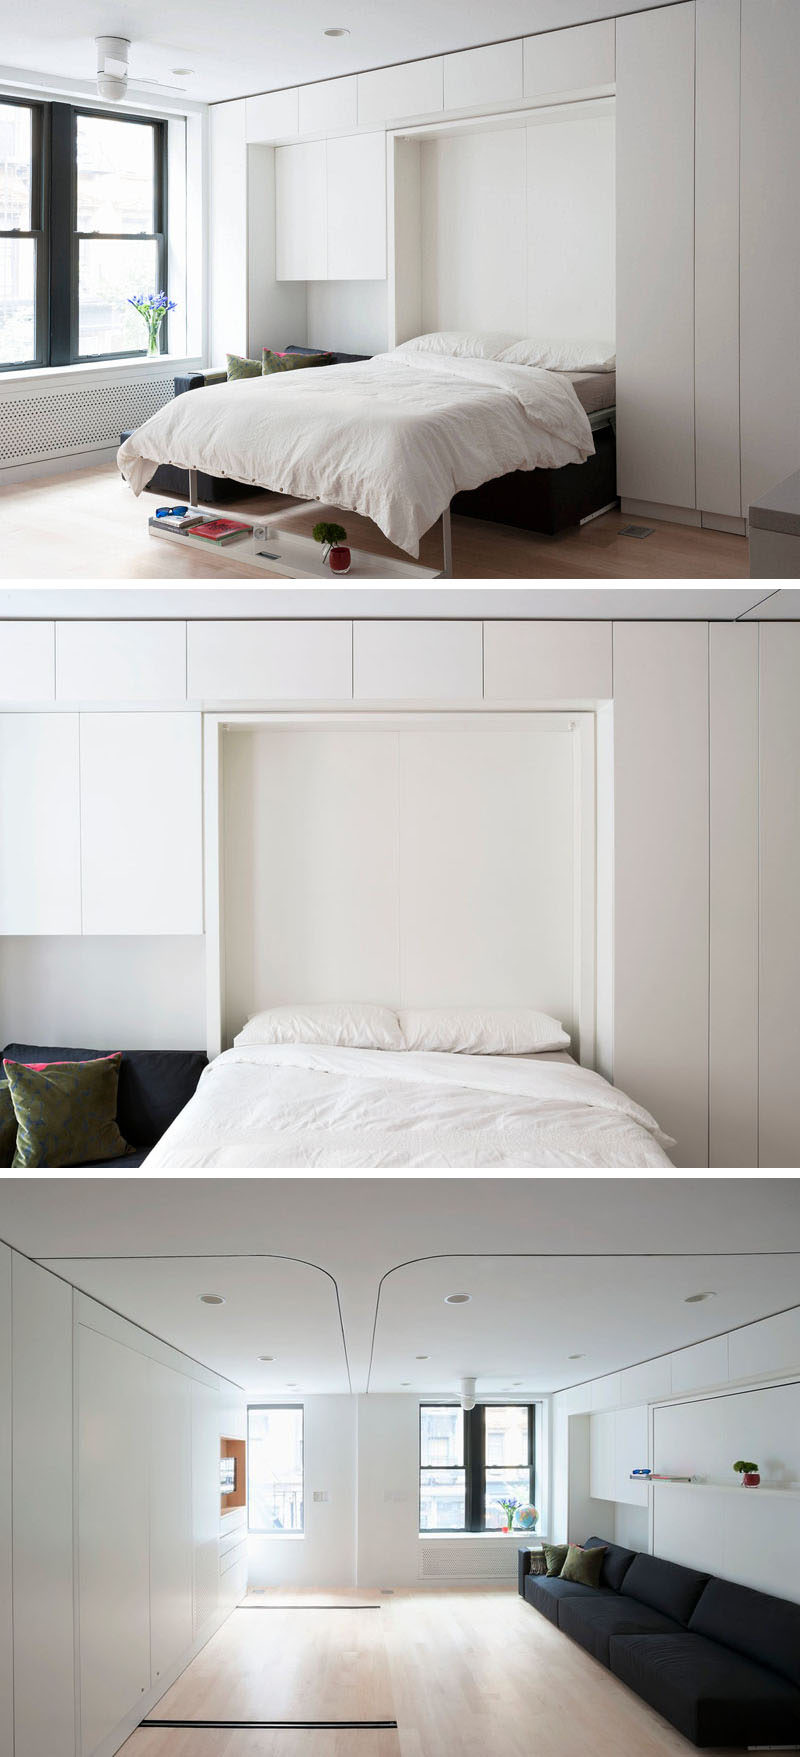 Bedroom Design Ideas - 8 Ways To Create The Ultimate Bed Surround With Storage // Store Your Bed -- If you're really tight on space consider using a murphy bed. When they're not being used you can't even tell they're there and they blend in with the cabinetry.